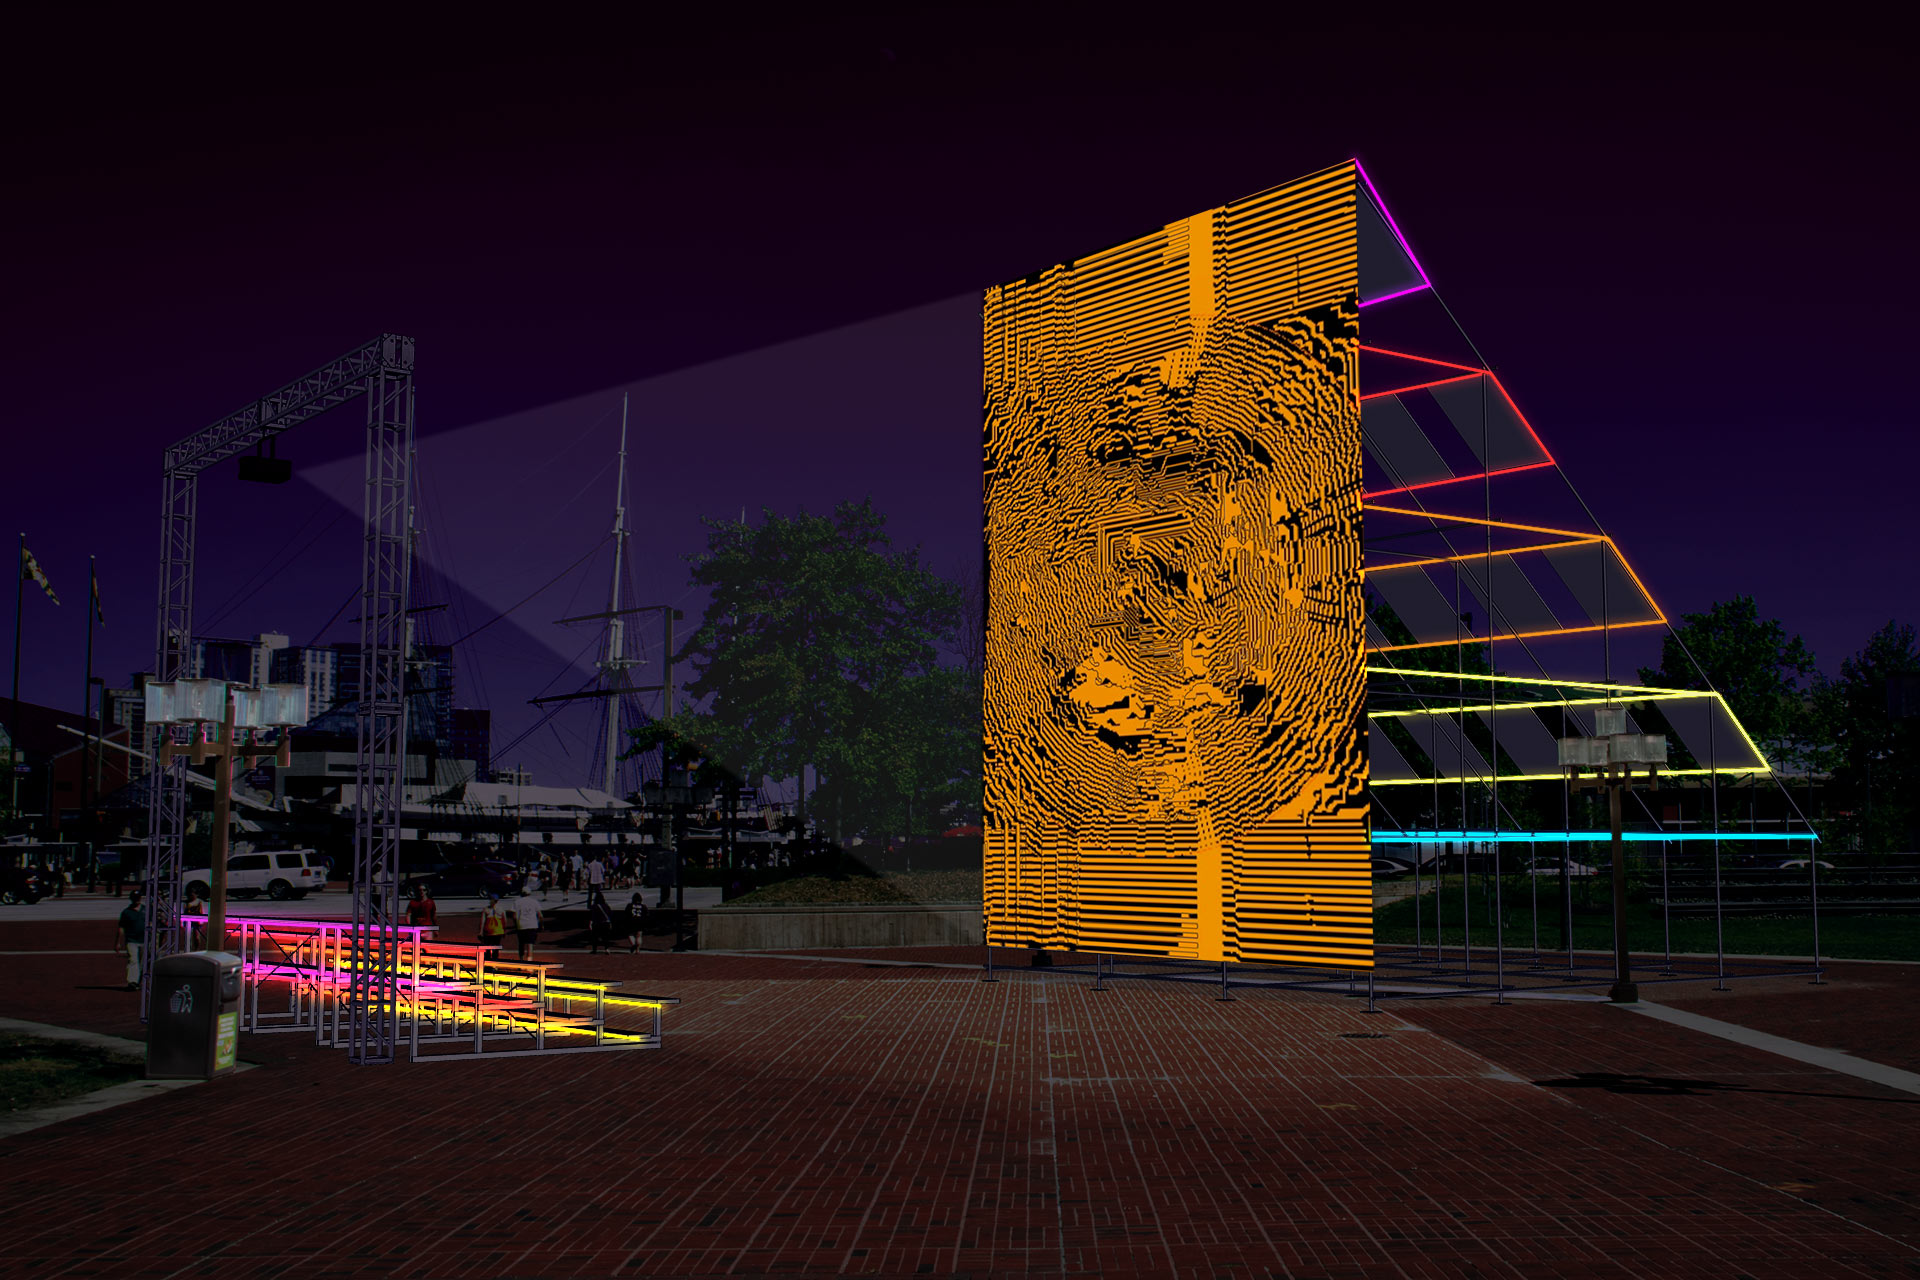 """Sun Stomp     Premiering at the 2018 Light City Baltimore festival, Sun Stomp was a solar powered light and interactive audio-visual environment that for eight nights activated McKeldin Square. The monumental scaffolding sculpture featured an interactive projection on one side and an array of sixteen 290 watt solar panels on the other. Electrical energy collected during the day and was stored as chemical energy in a battery bank which provided electricity to a colorful array of LED neon lights illuminating the structure after dark. Participants were invited to stomp on the bleacher footboards to trigger sun-inspired visuals and amplified sounds of the Sun sourced from NASA's Solar Dynamics Observatory. Passersby were also invited to peer into the custom built """"Power Shed"""" to learn about the solar technology and AV controls energizing the project. Foot-stomping powers combined, participants visually and experientially conjured the awesome and beautiful power of the sun.   https://grahamprojects.com/projects/sunstomp/"""